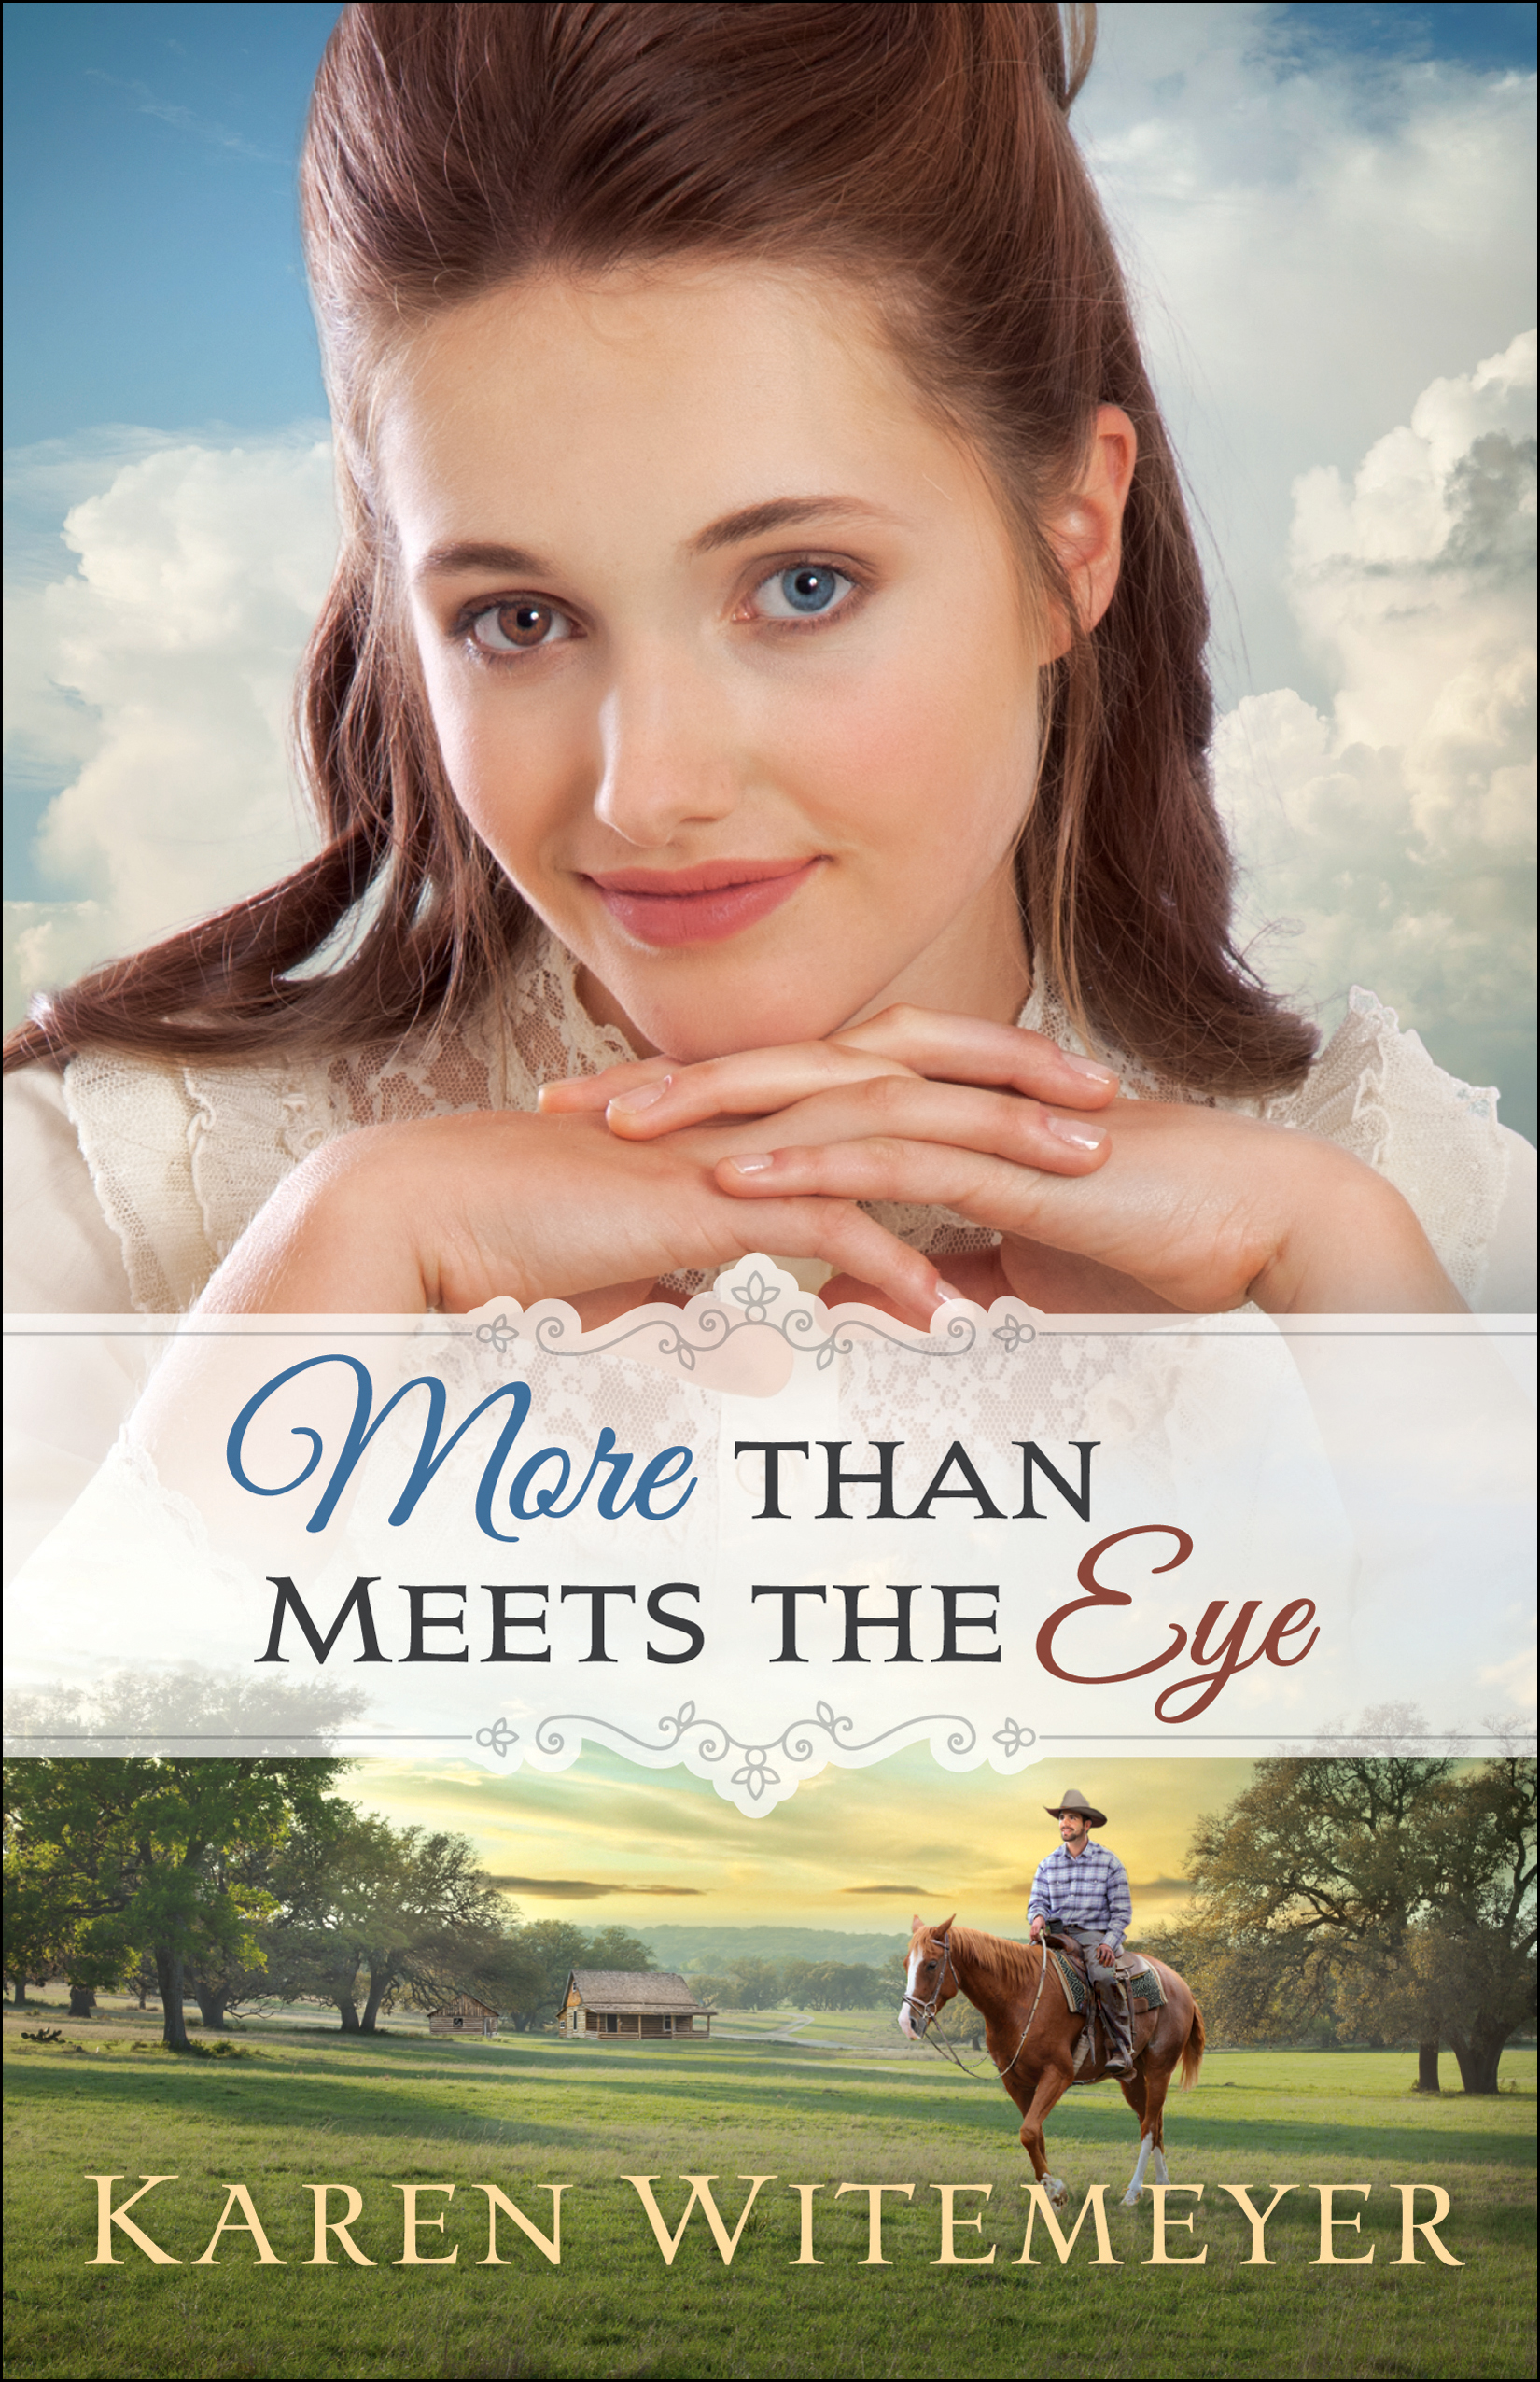 Book review of More Than Meets The Eye by Karen Witemeyer (Bethany House) by papertapepins